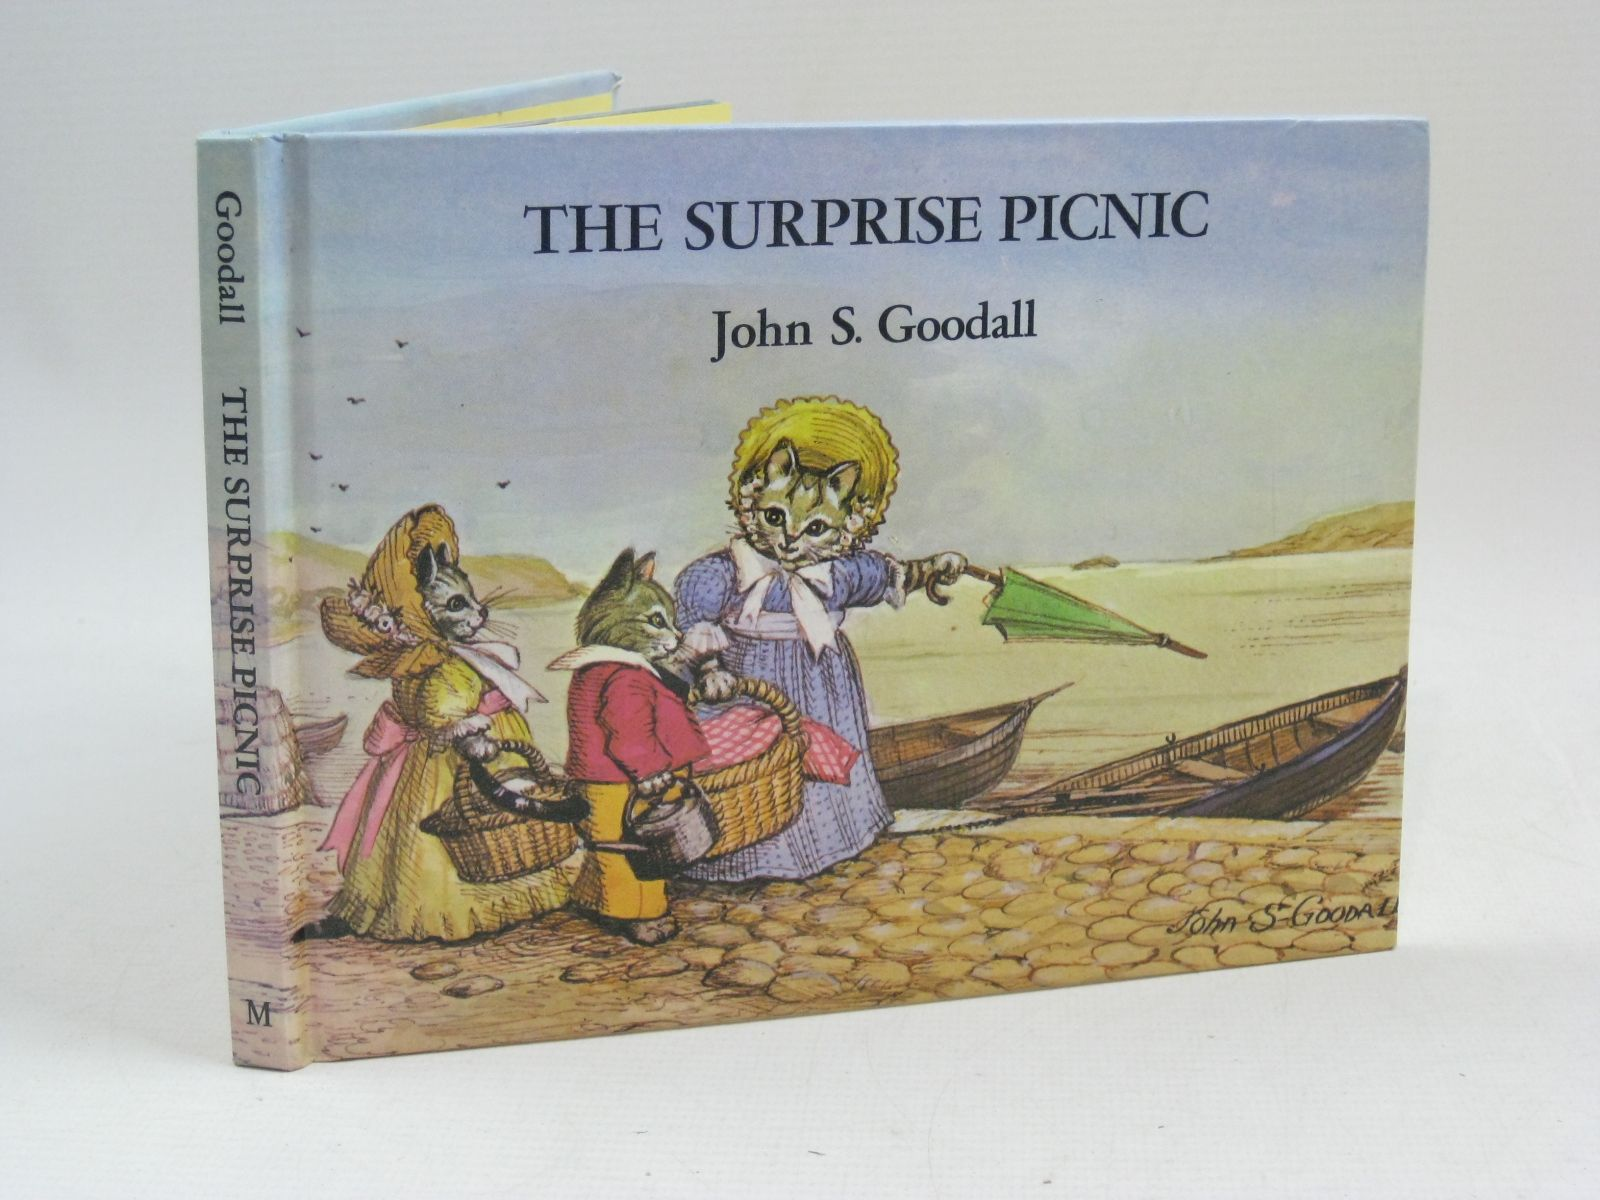 Photo of THE SURPRISE PICNIC written by Goodall, John S. illustrated by Goodall, John S. published by Macmillan London Limited (STOCK CODE: 1405159)  for sale by Stella & Rose's Books